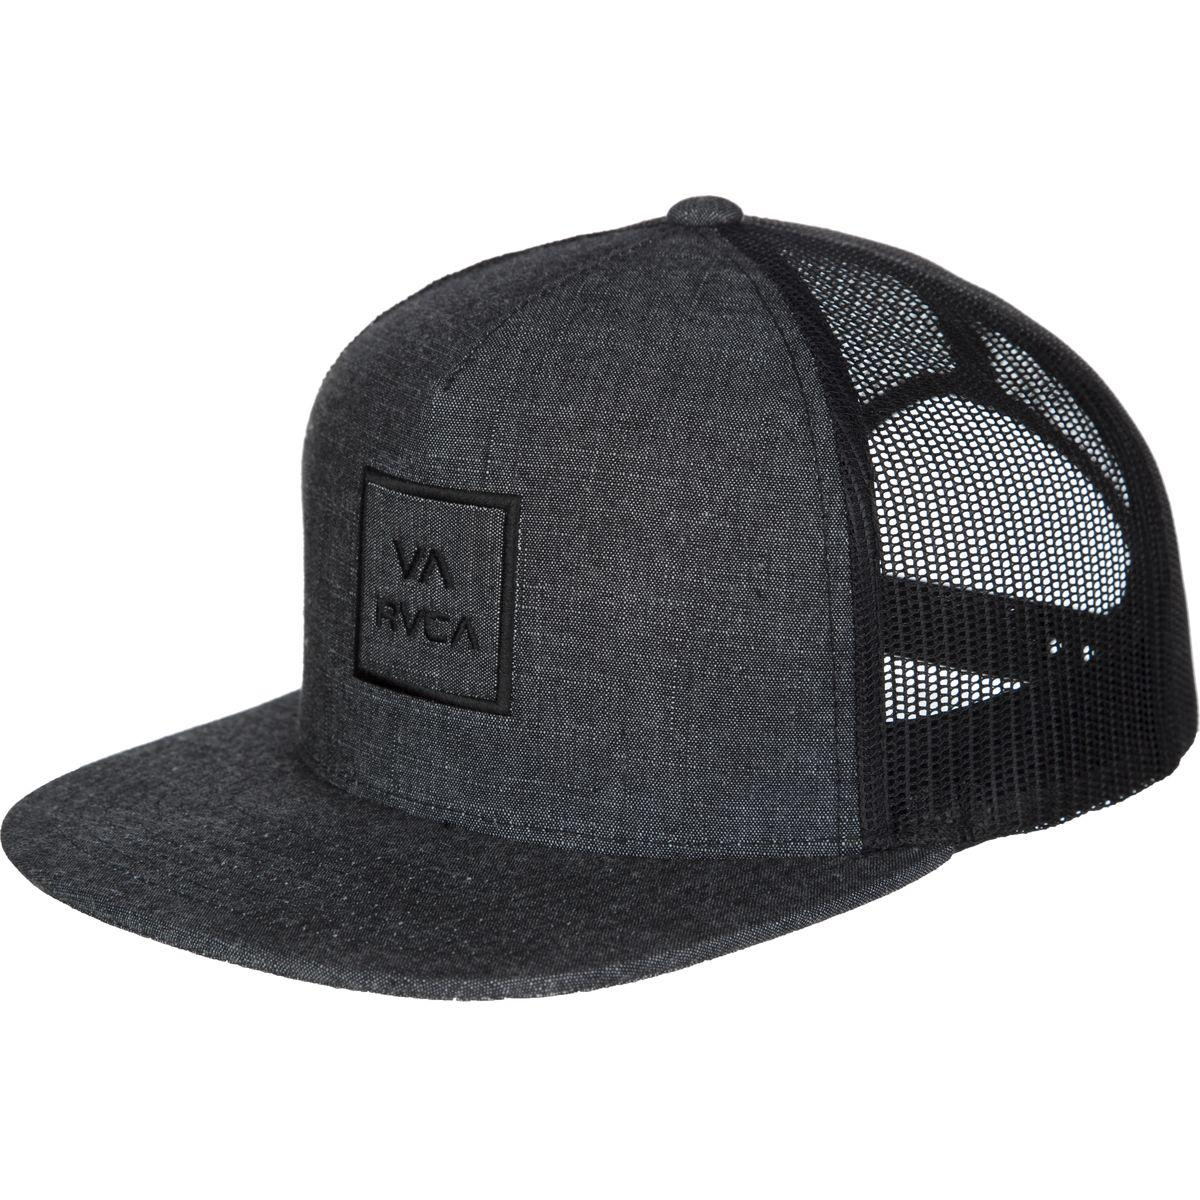 ac081b97713b2 RVCA Va All The Way Iii Trucker Hat in Black for Men - Lyst